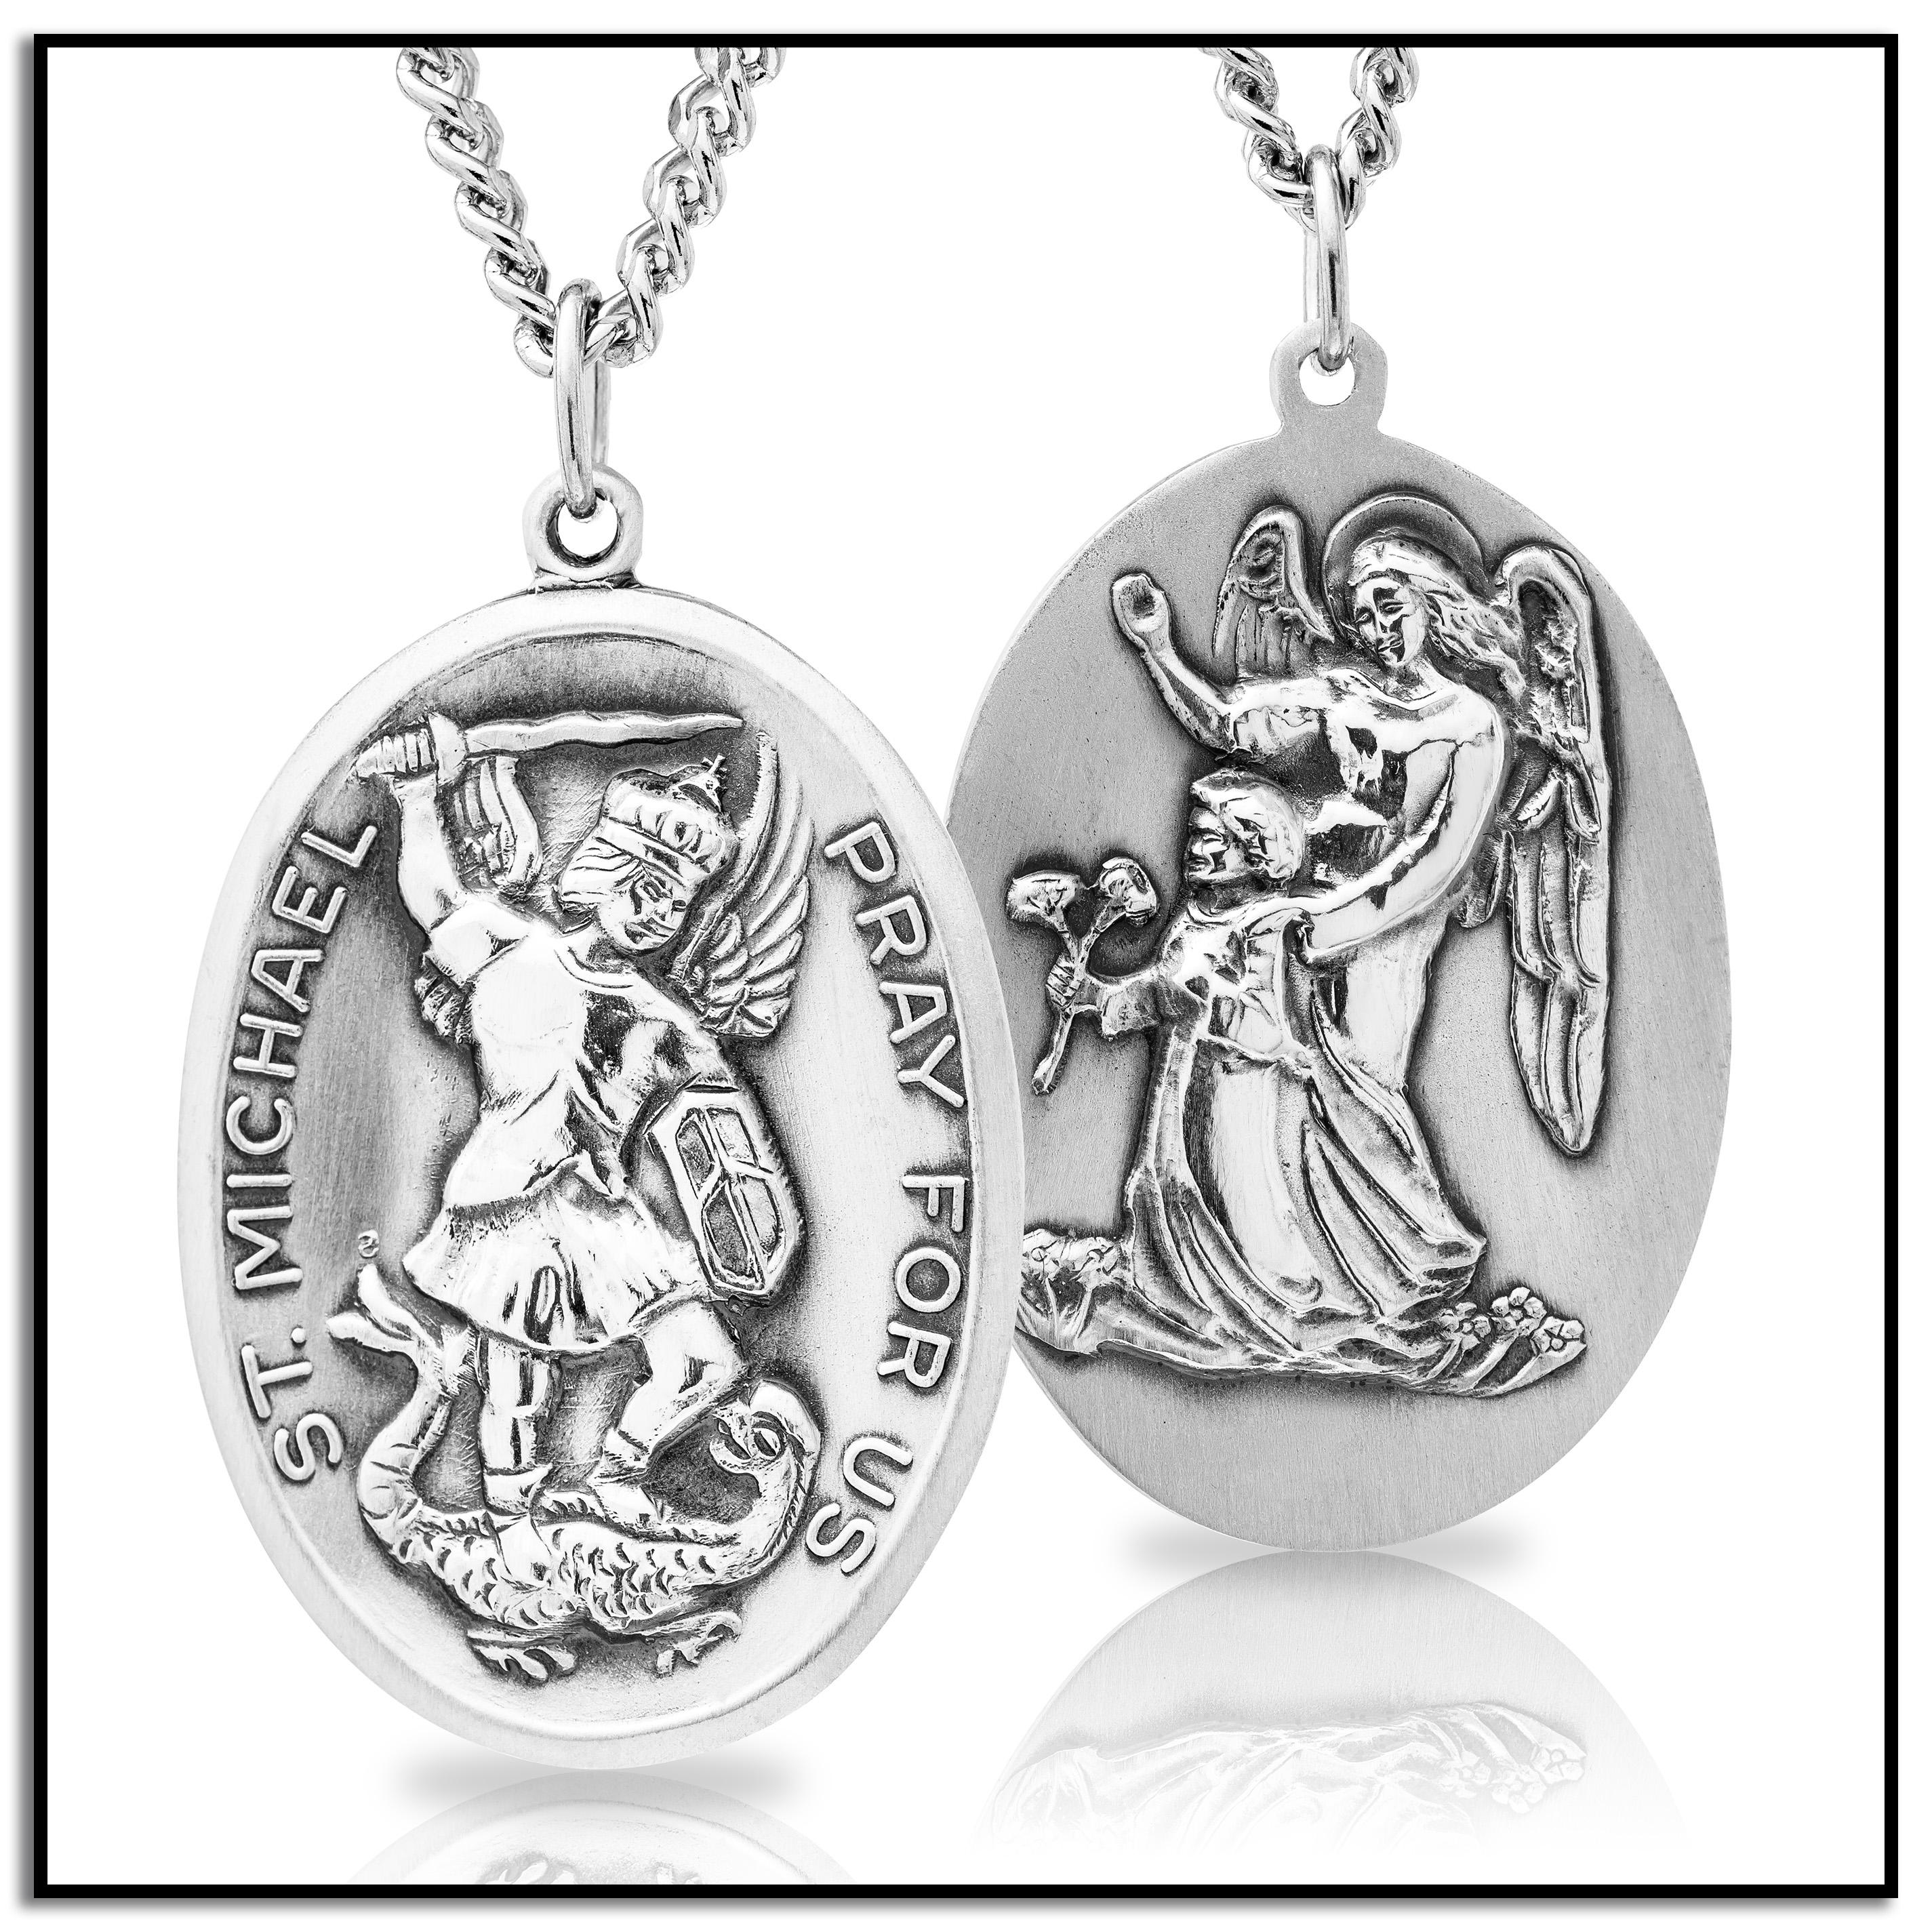 medal catholic gold traveler and pendant talisman saint christopher michael pin jewelry archangel plated french